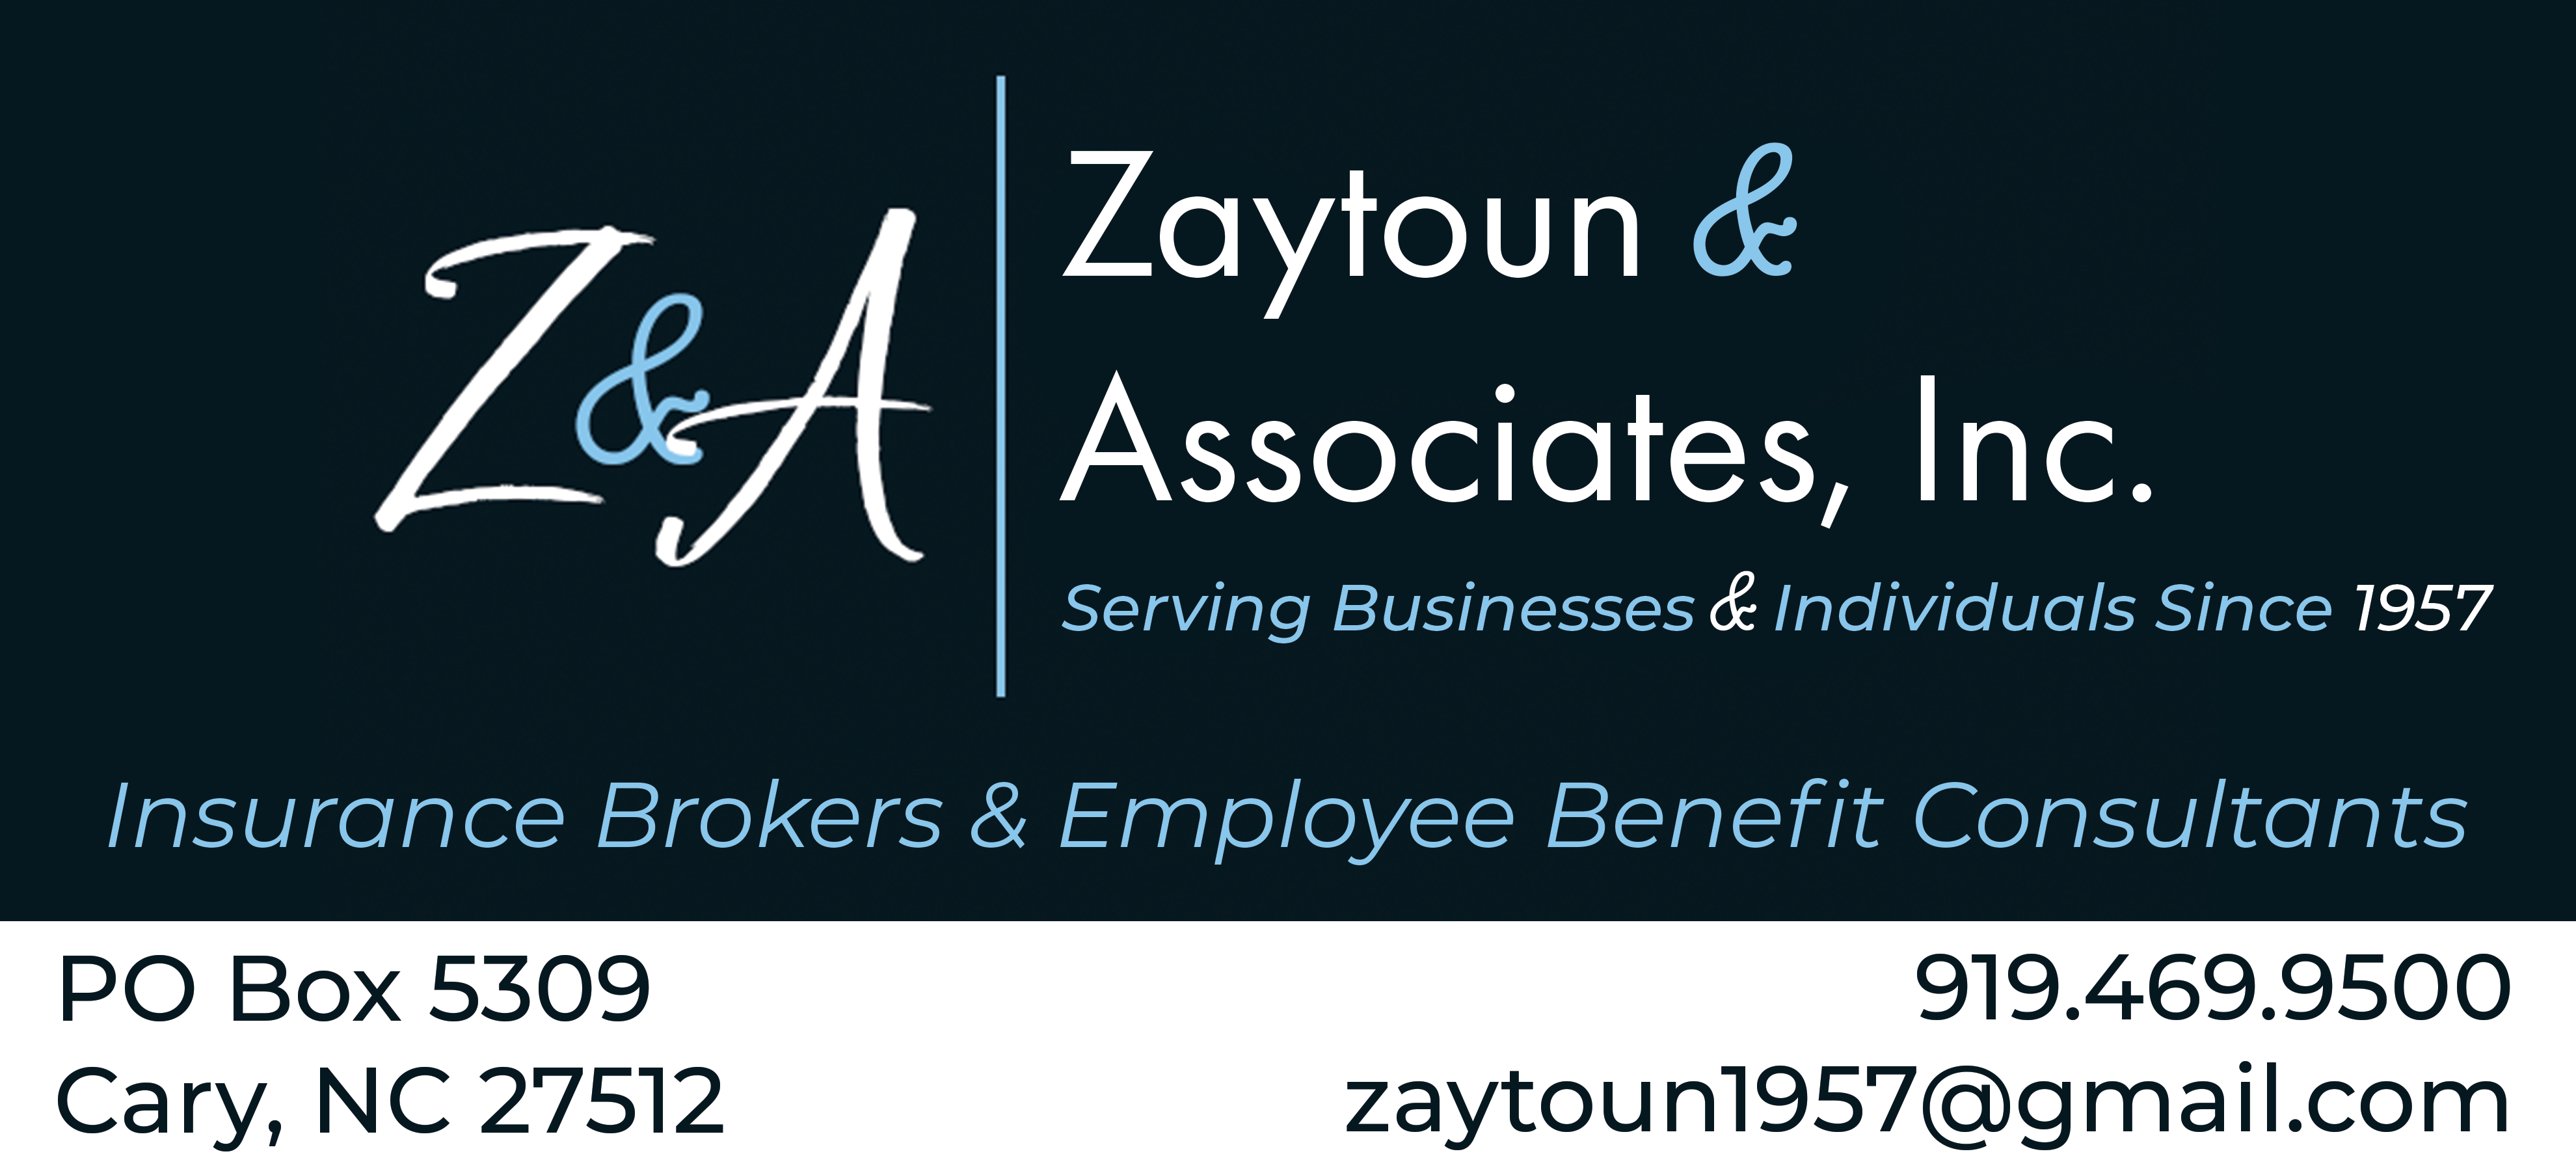 Zaytoun & Associates, Inc